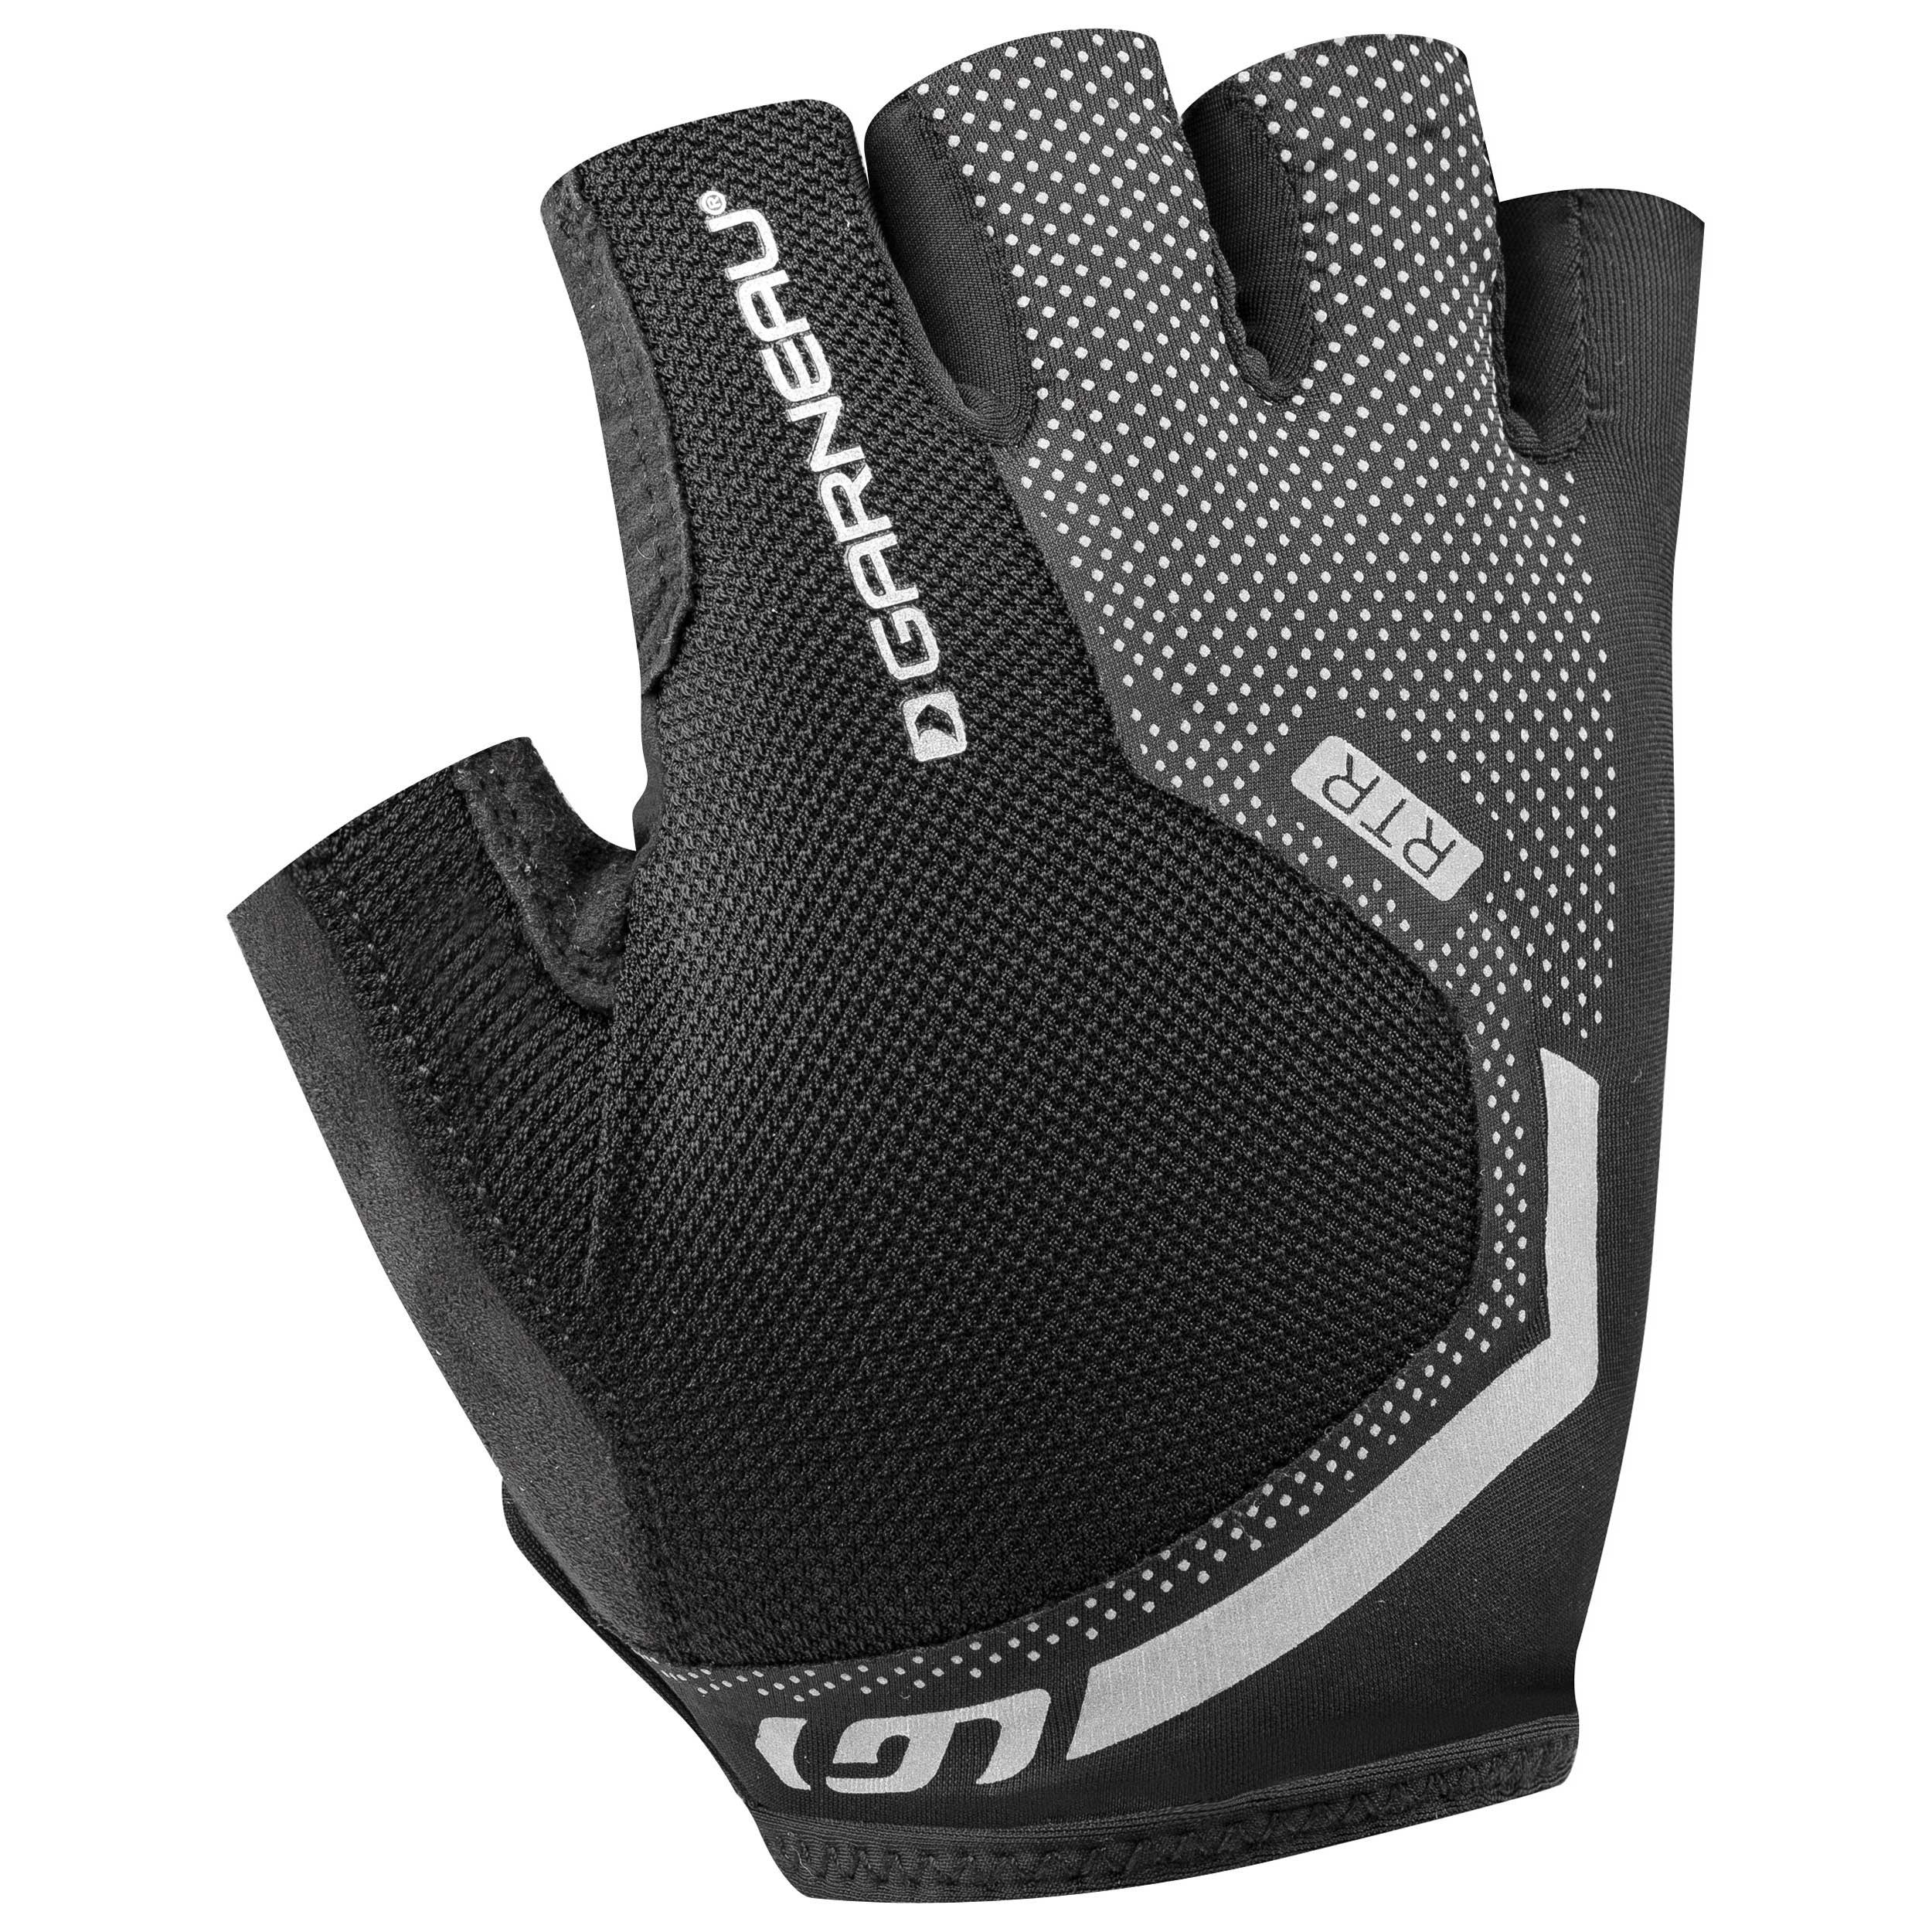 Louis Garneau Mondo Sprint Cycling Gloves